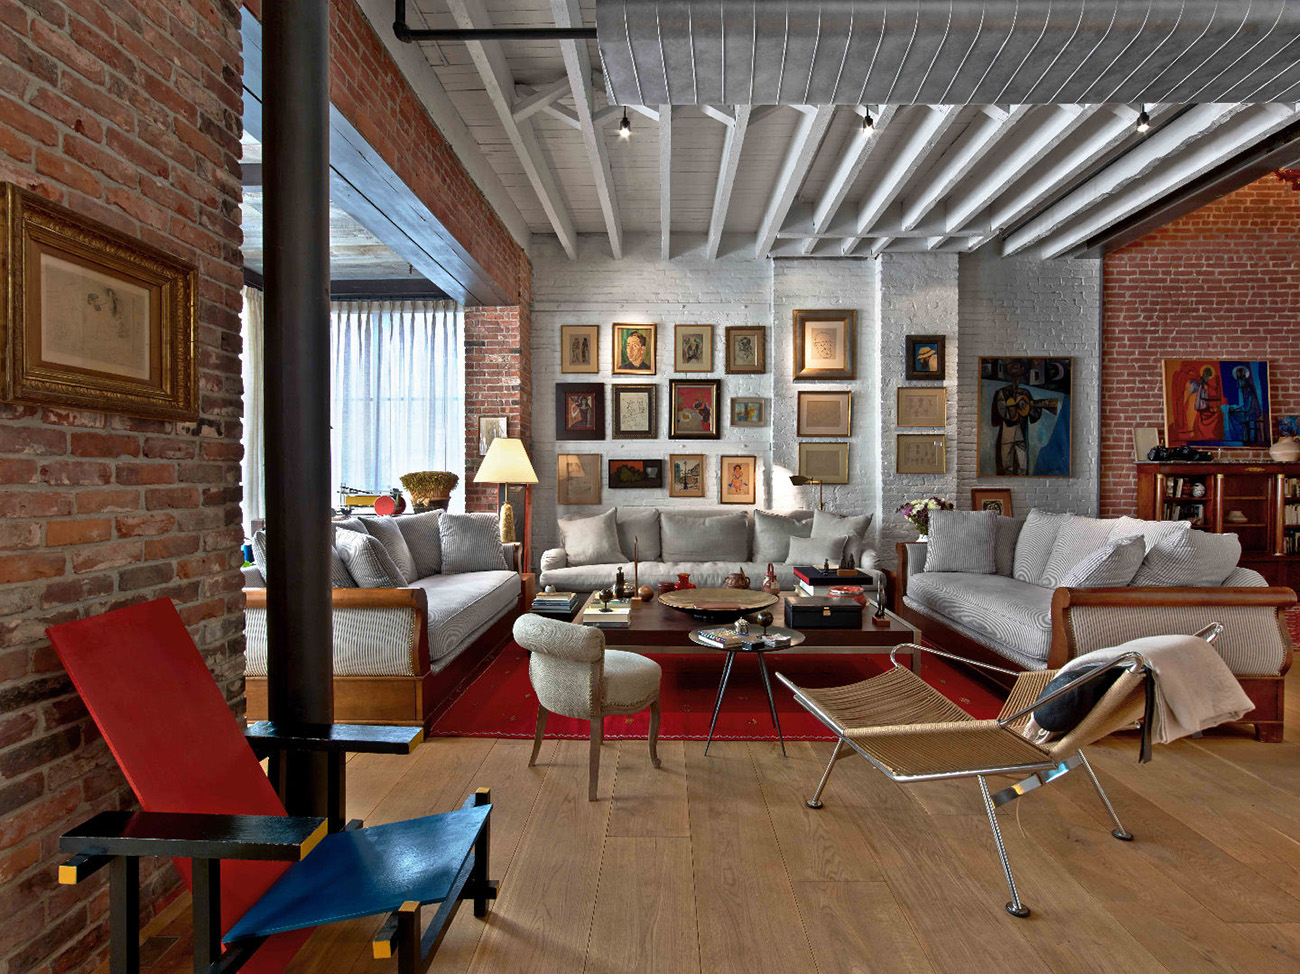 Properties to Inspire Travellers on Airbnb — Oliver Grand